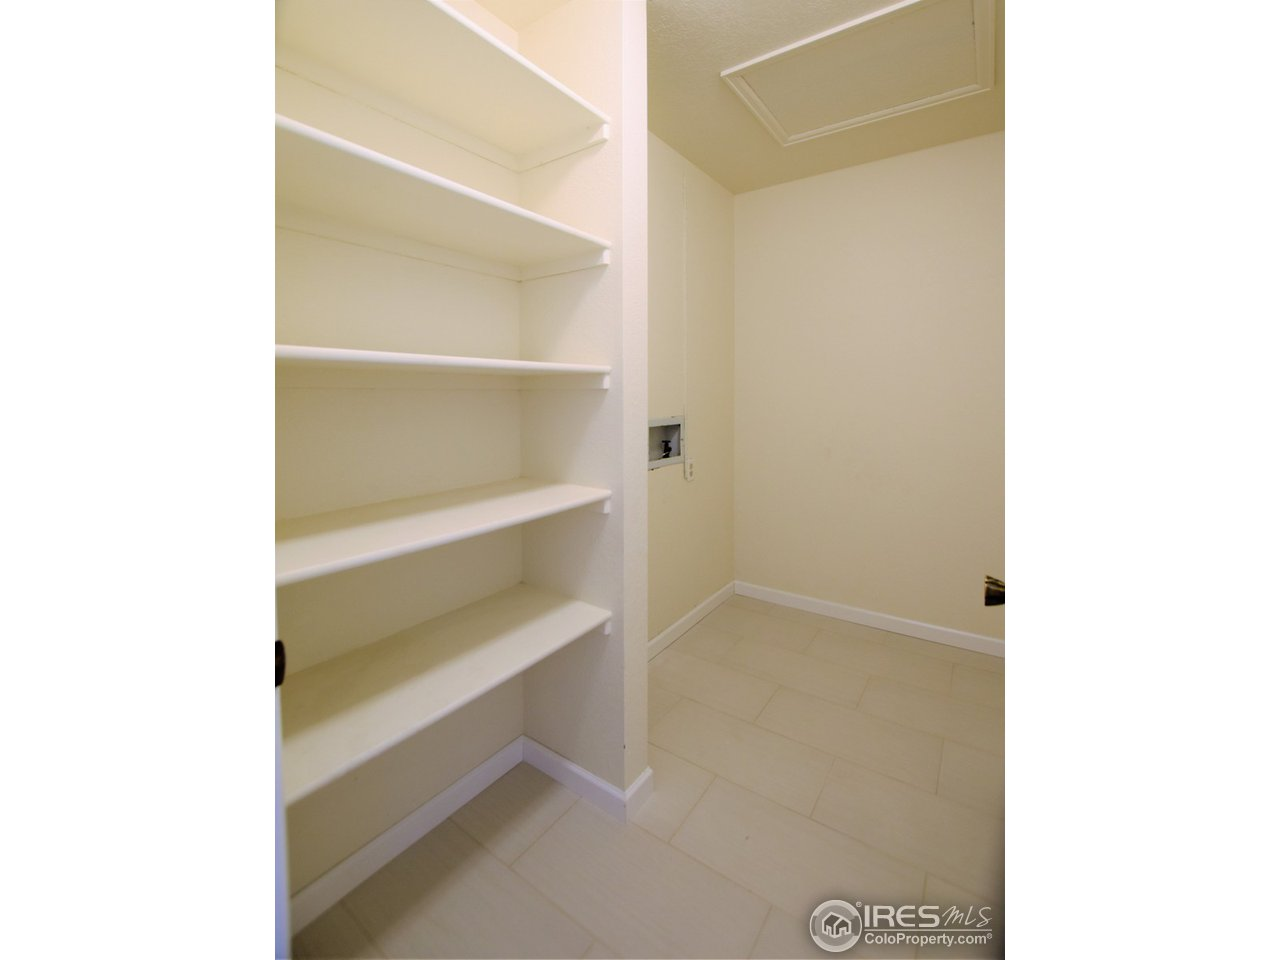 Laundry room and storage